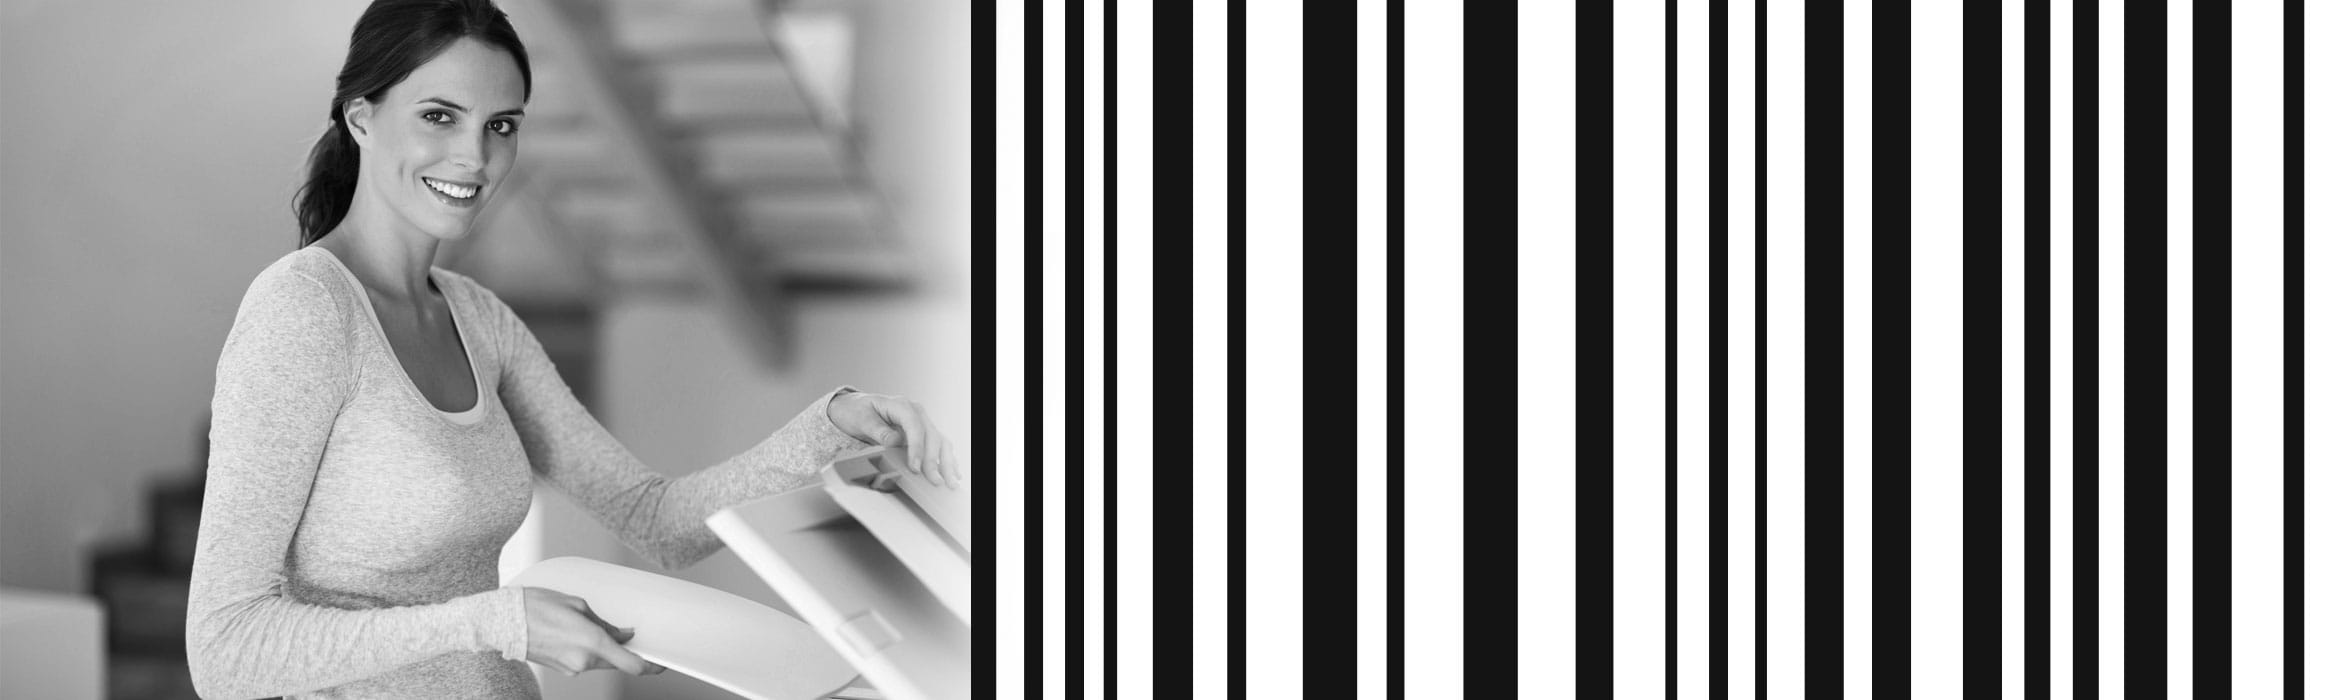 Woman with printer and barcode